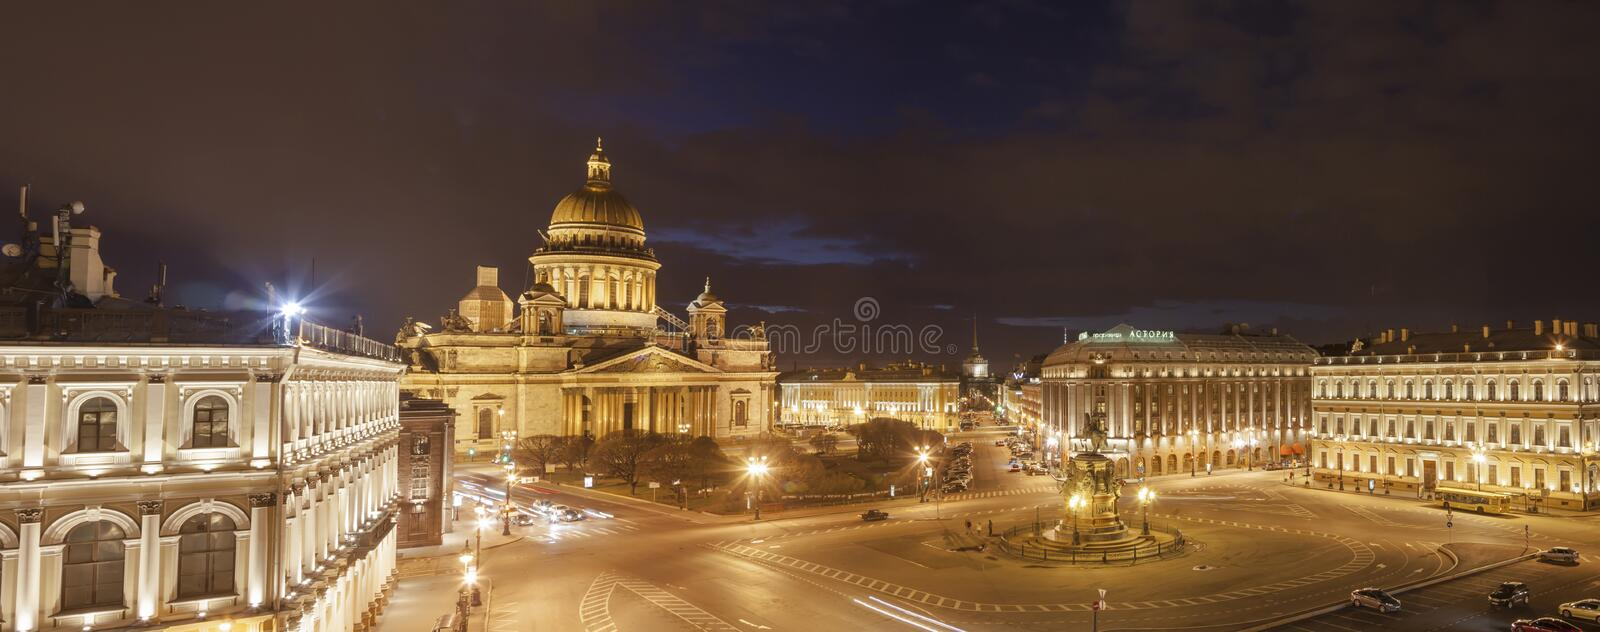 Saint Isaac's Cathedral place night panoramic view stock photo